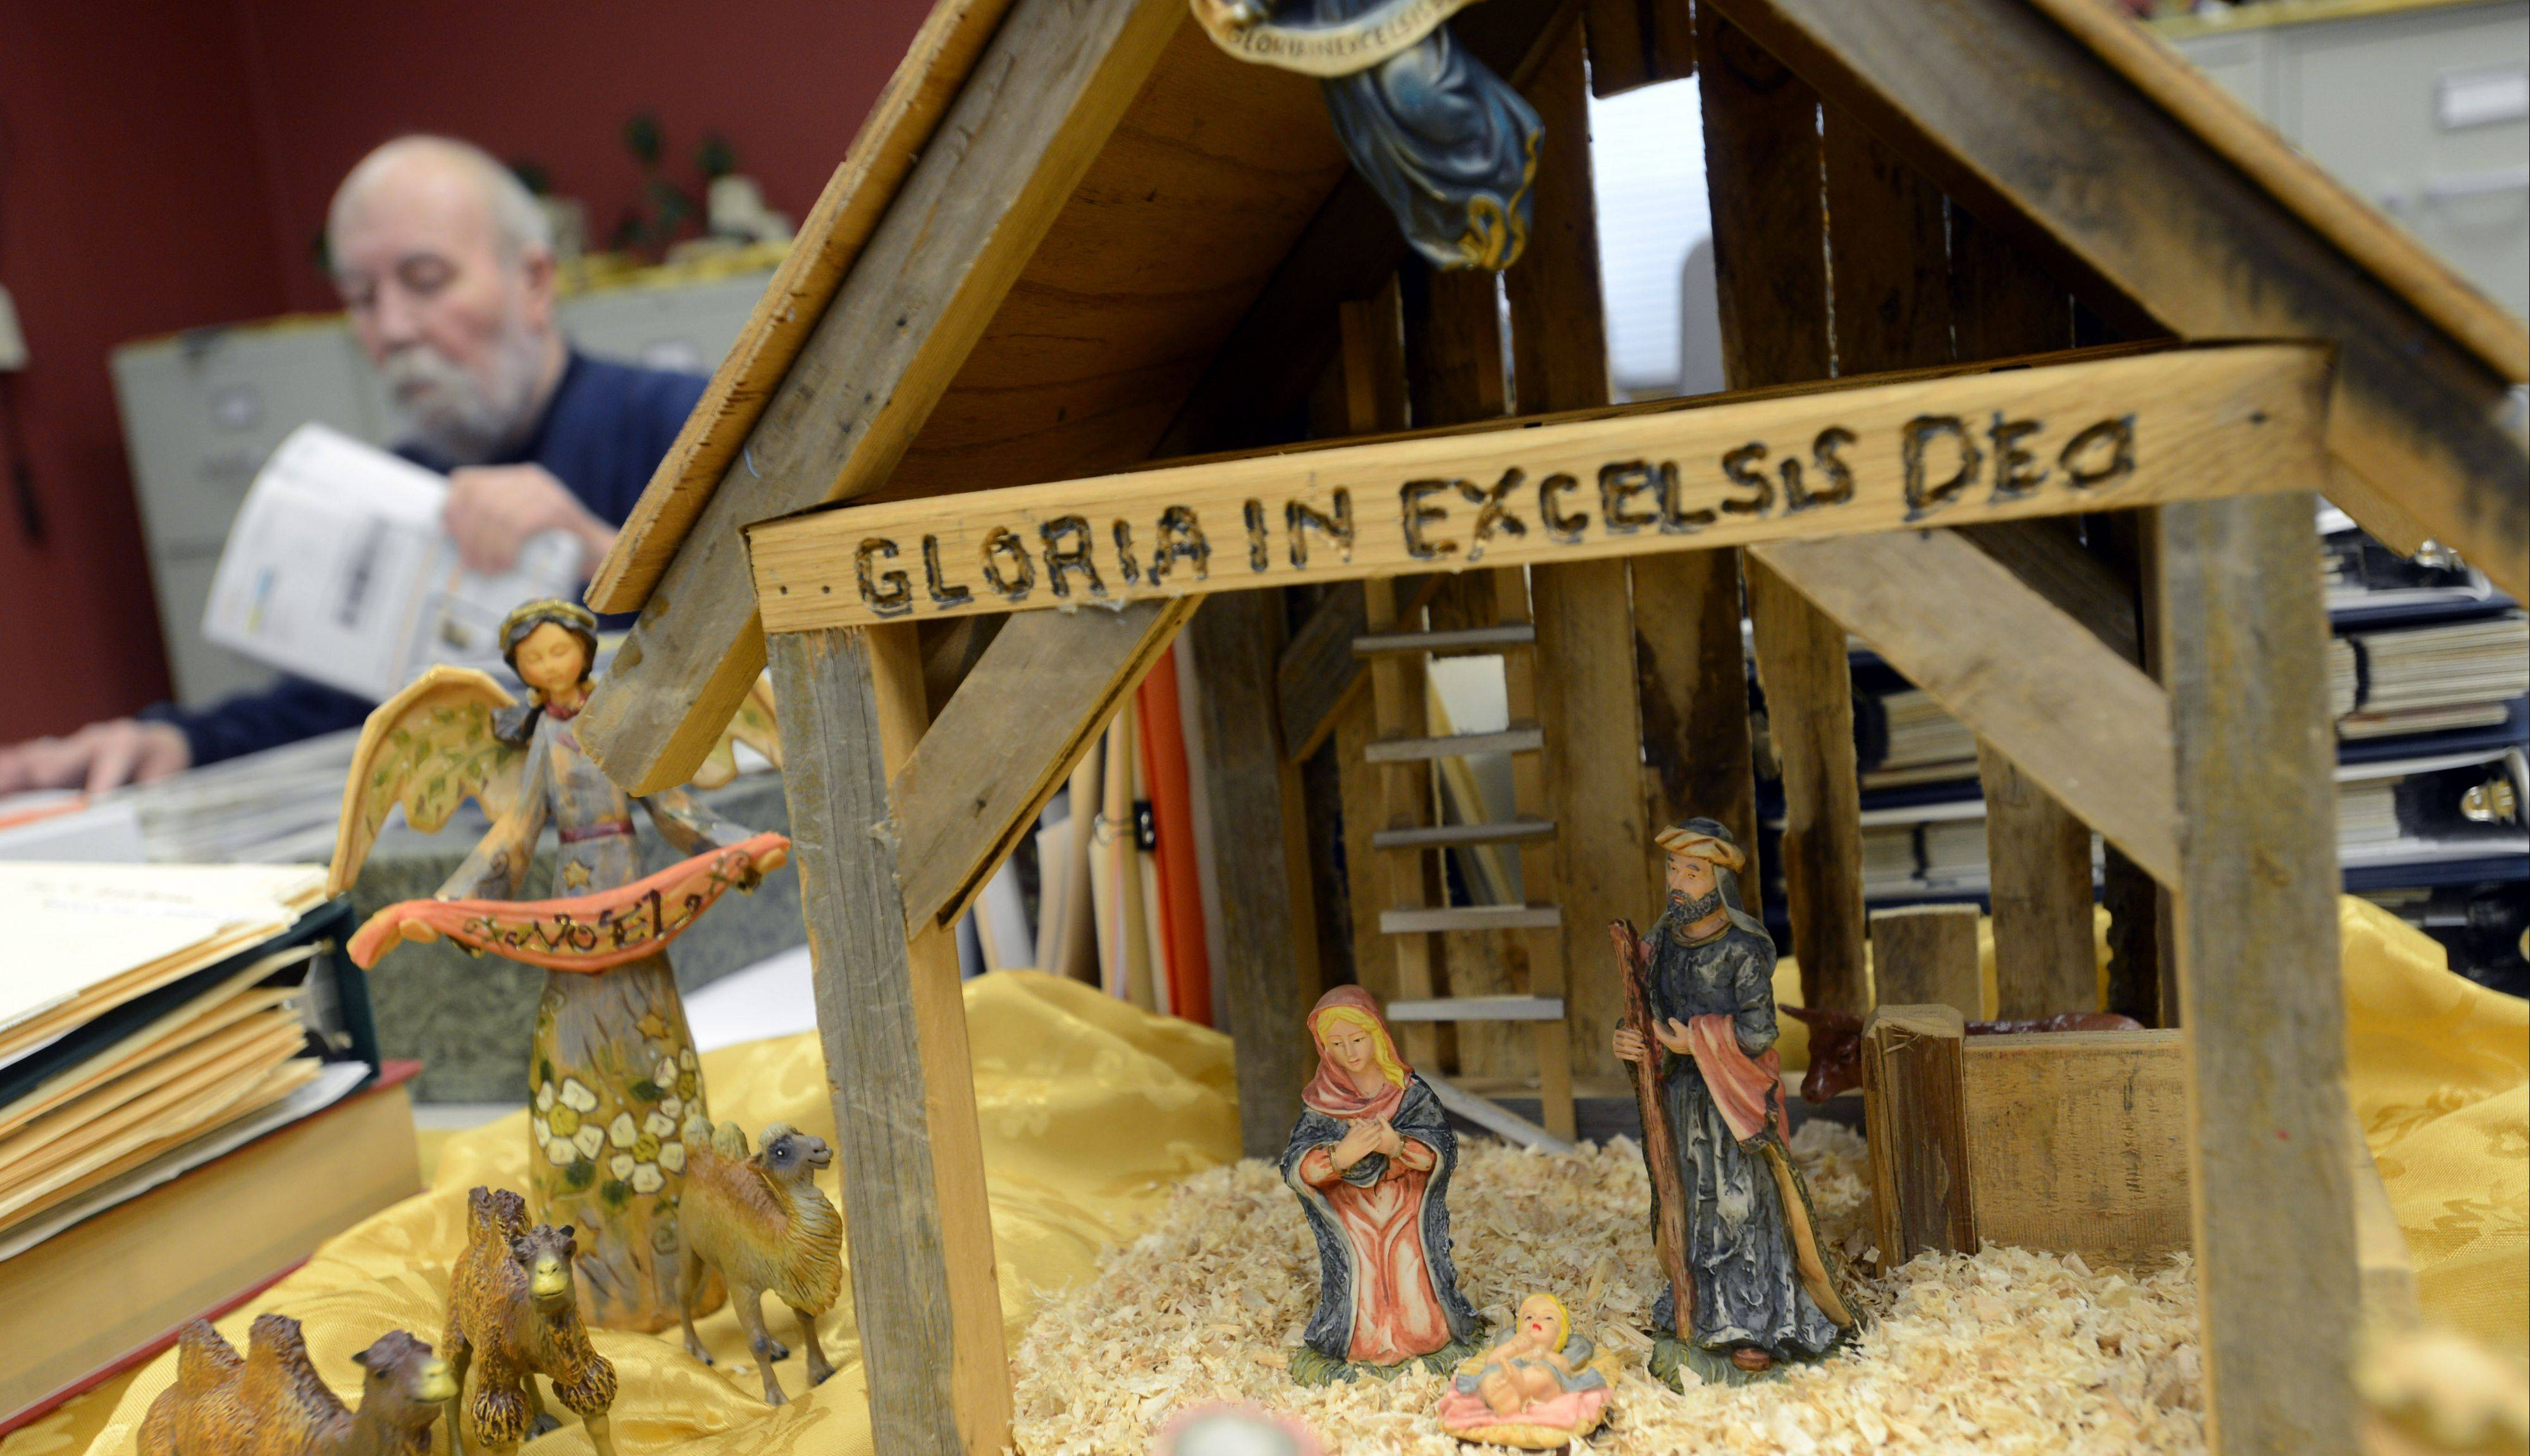 Ela Historical Society and Museum President Ron Frank works near one of the Nativity sets on display in Lake Zurich.